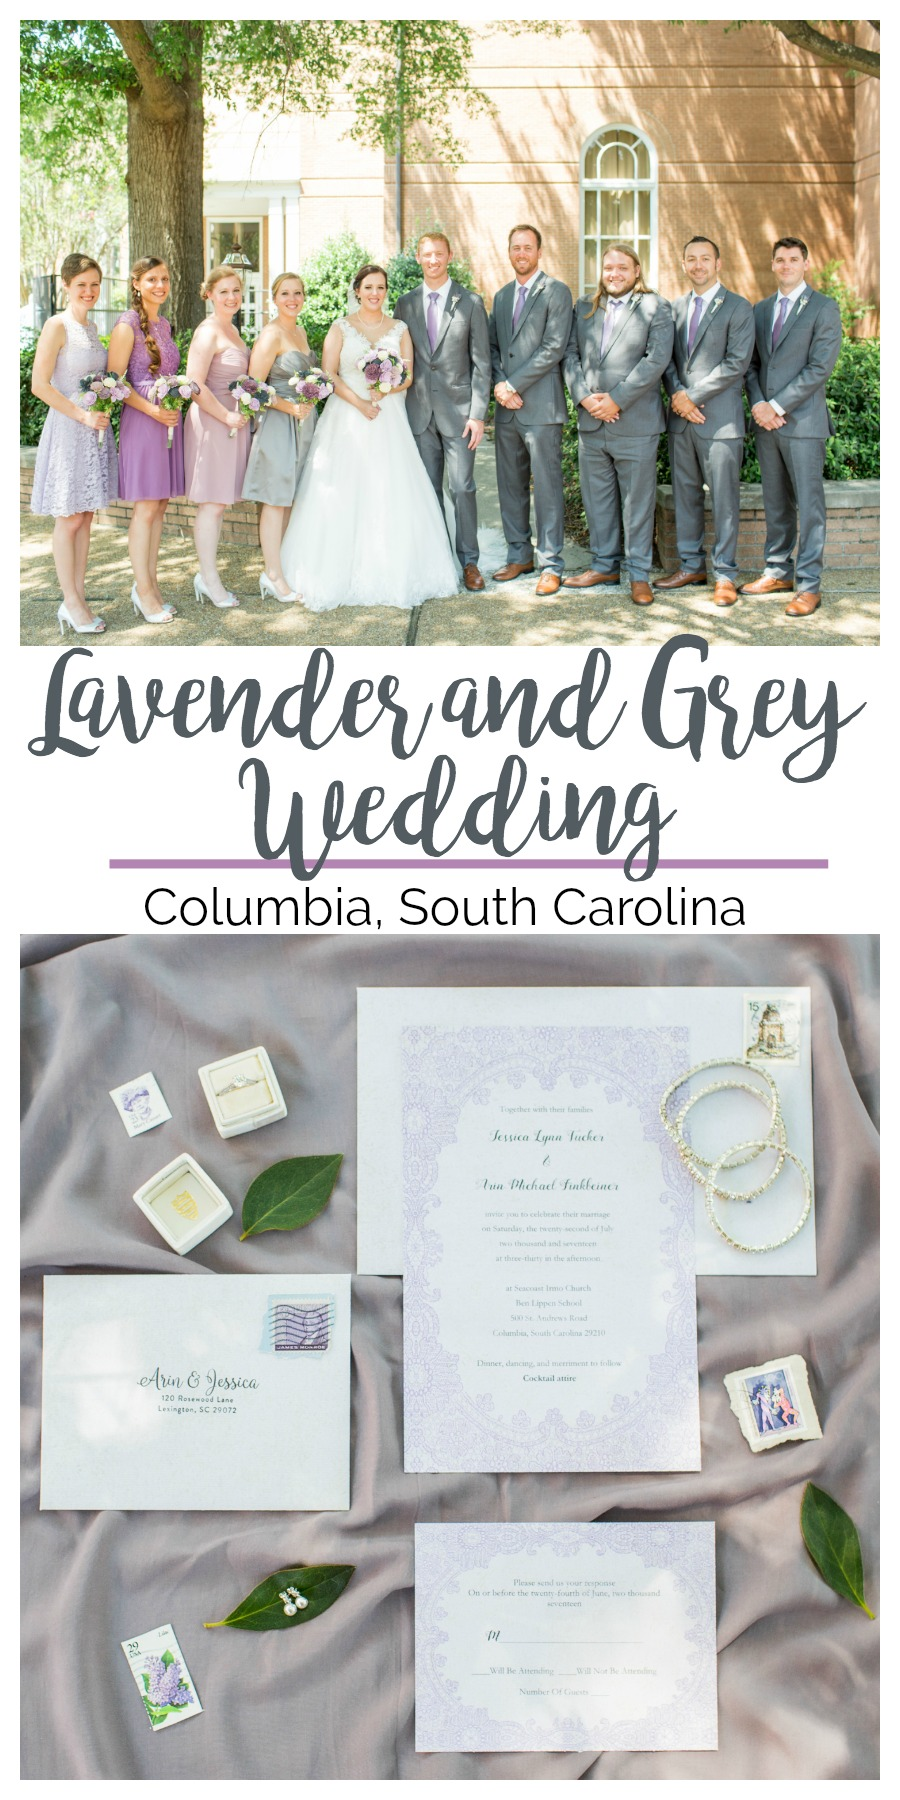 Jessica + Arin: A Columbia Church Wedding in Lavender and Grey | Palmetto State Weddings | photography by Jessica Hunt Photography